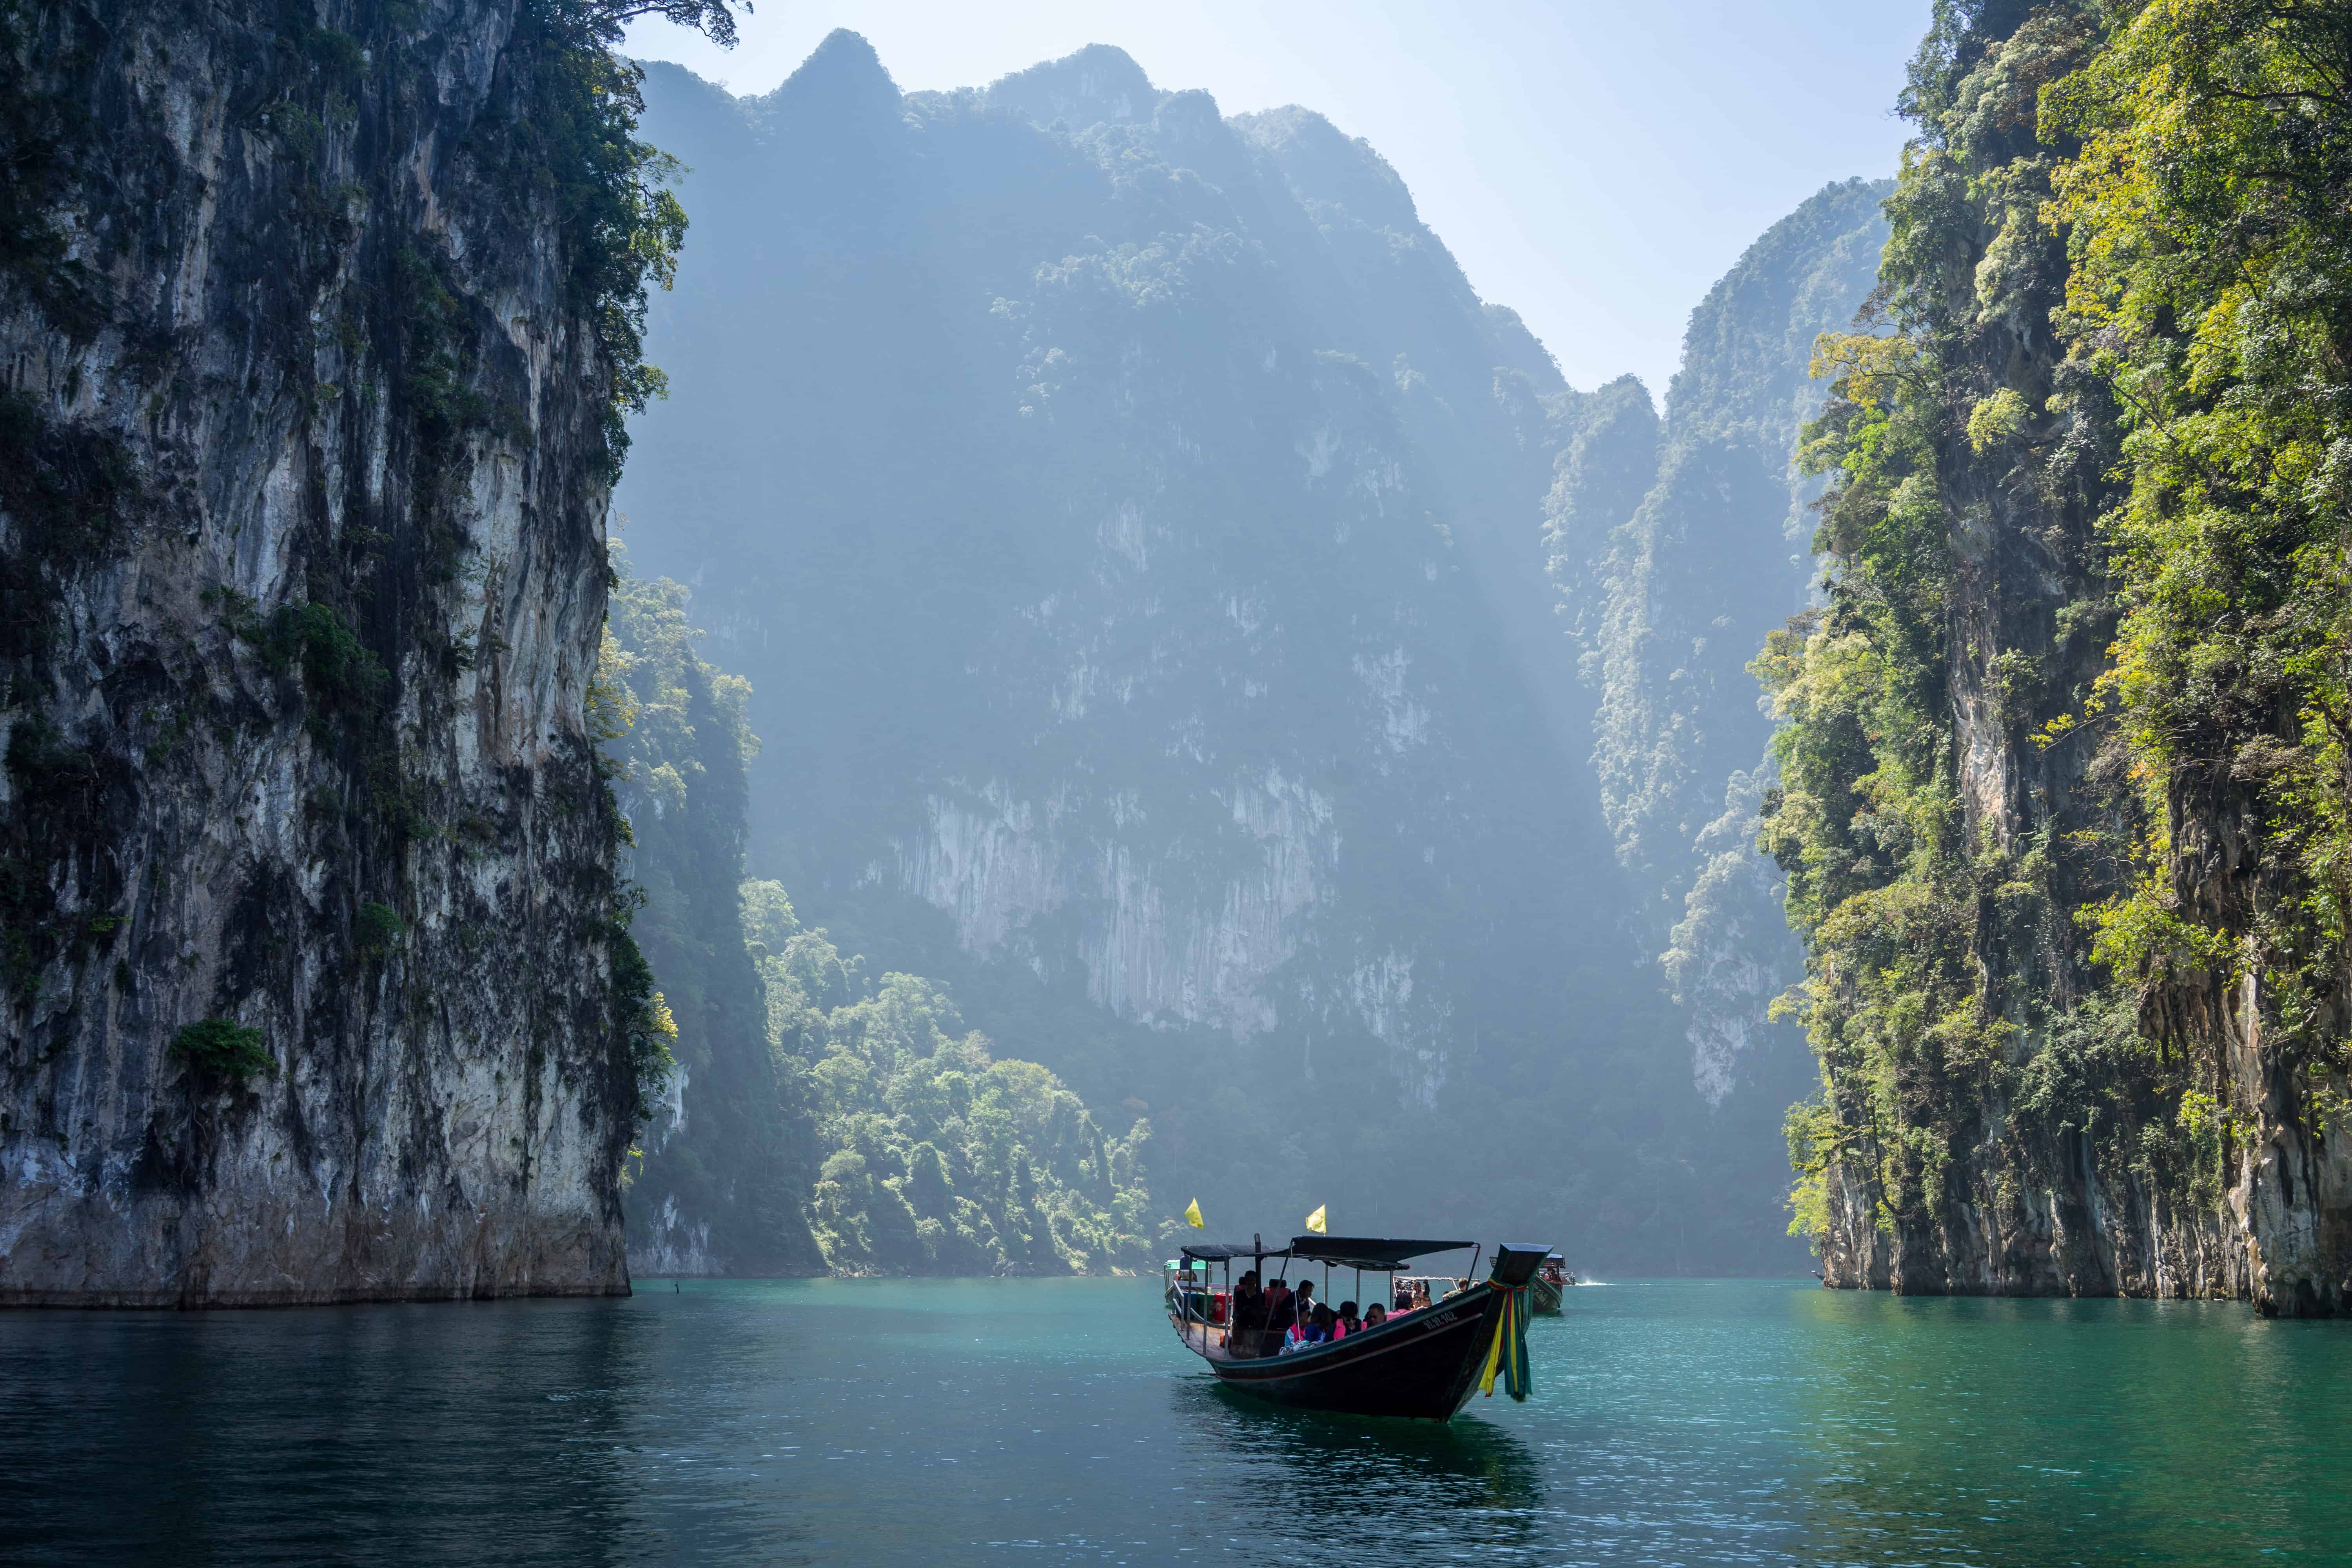 thailand waters, thailand boundary